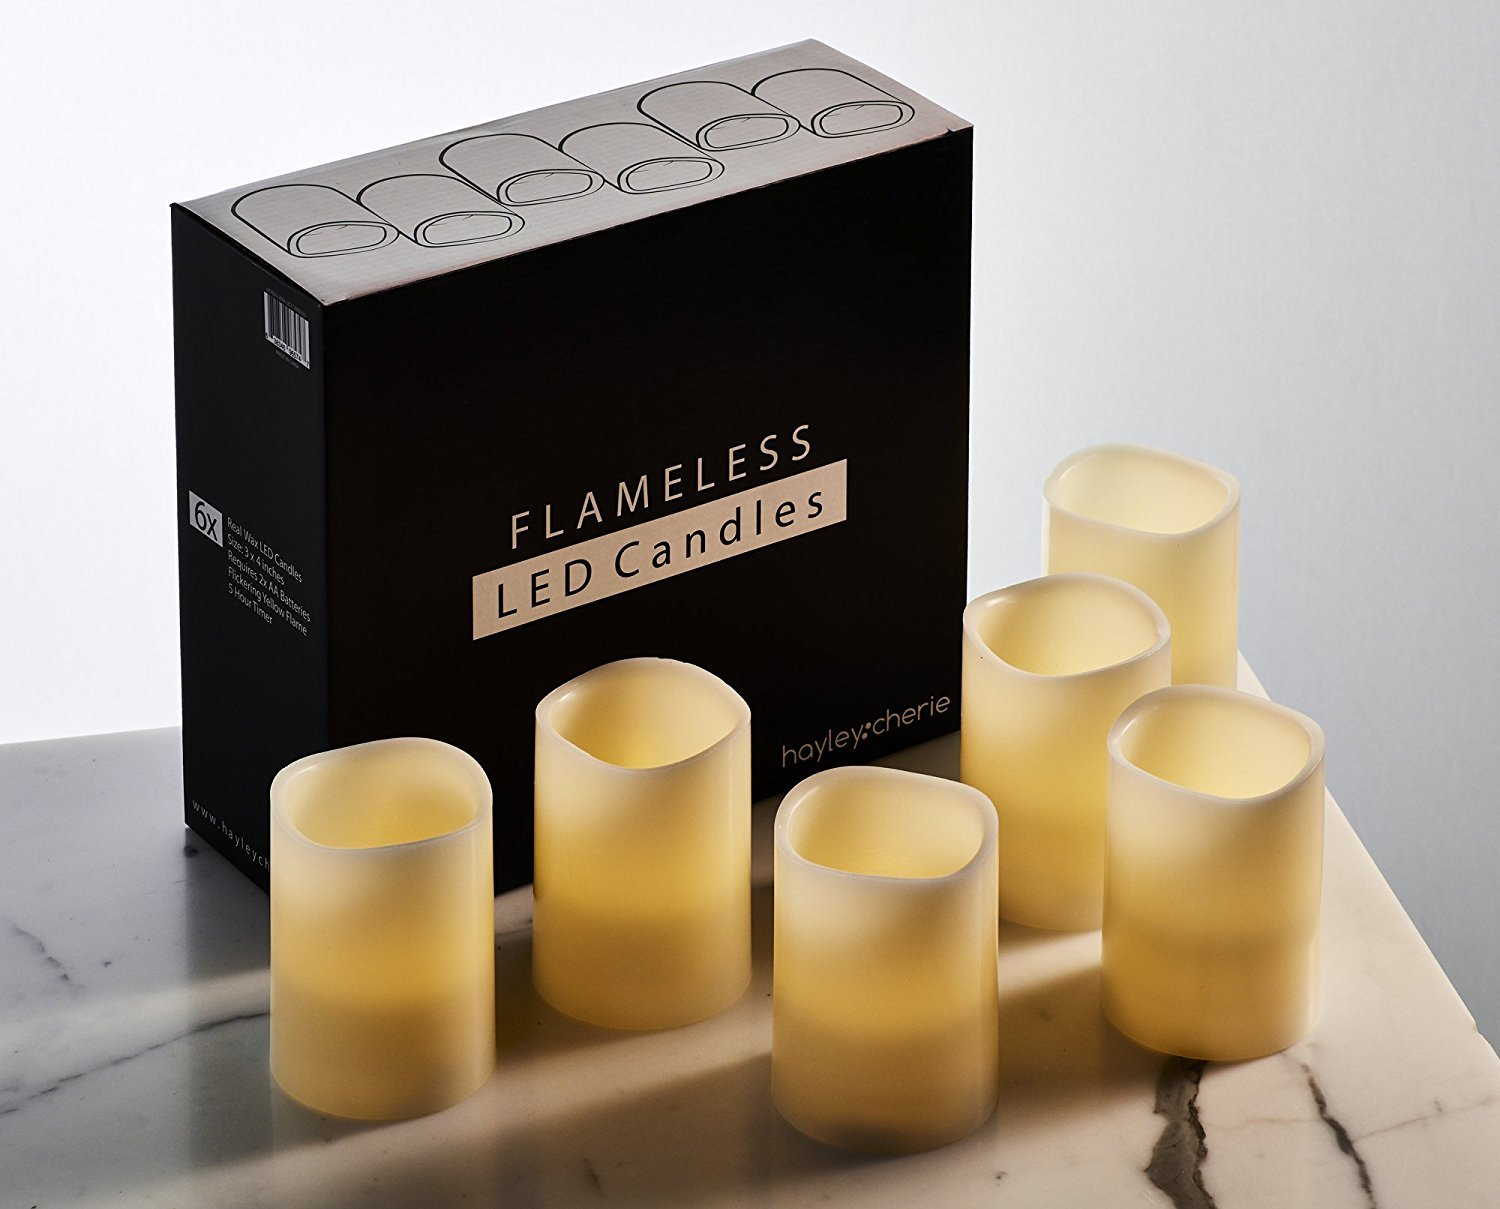 "Hayley Cherie - Real Wax Flameless Candles with Timer (Set of 6) - Ivory LED Candles 3"" wide x 4"" tall - Flickering Amber Flame - Battery Operated Pillar Candles - Large Unscented"